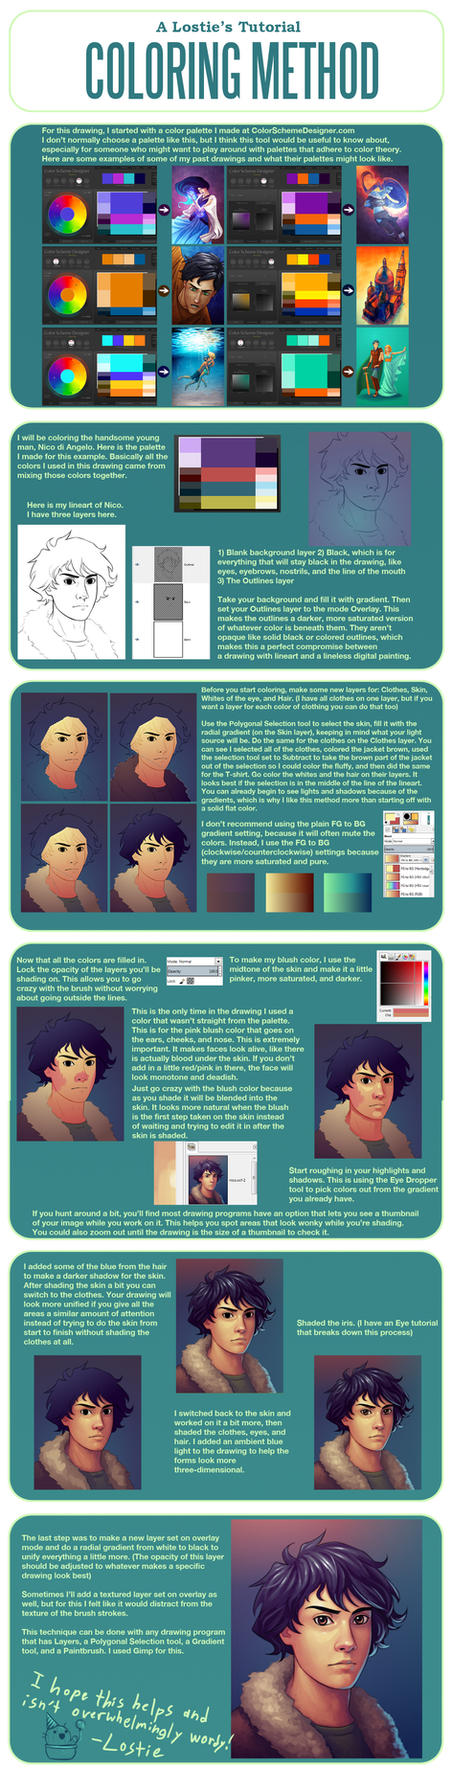 A Lostie's Tutorial - Coloring Method by LauraHollingsworth